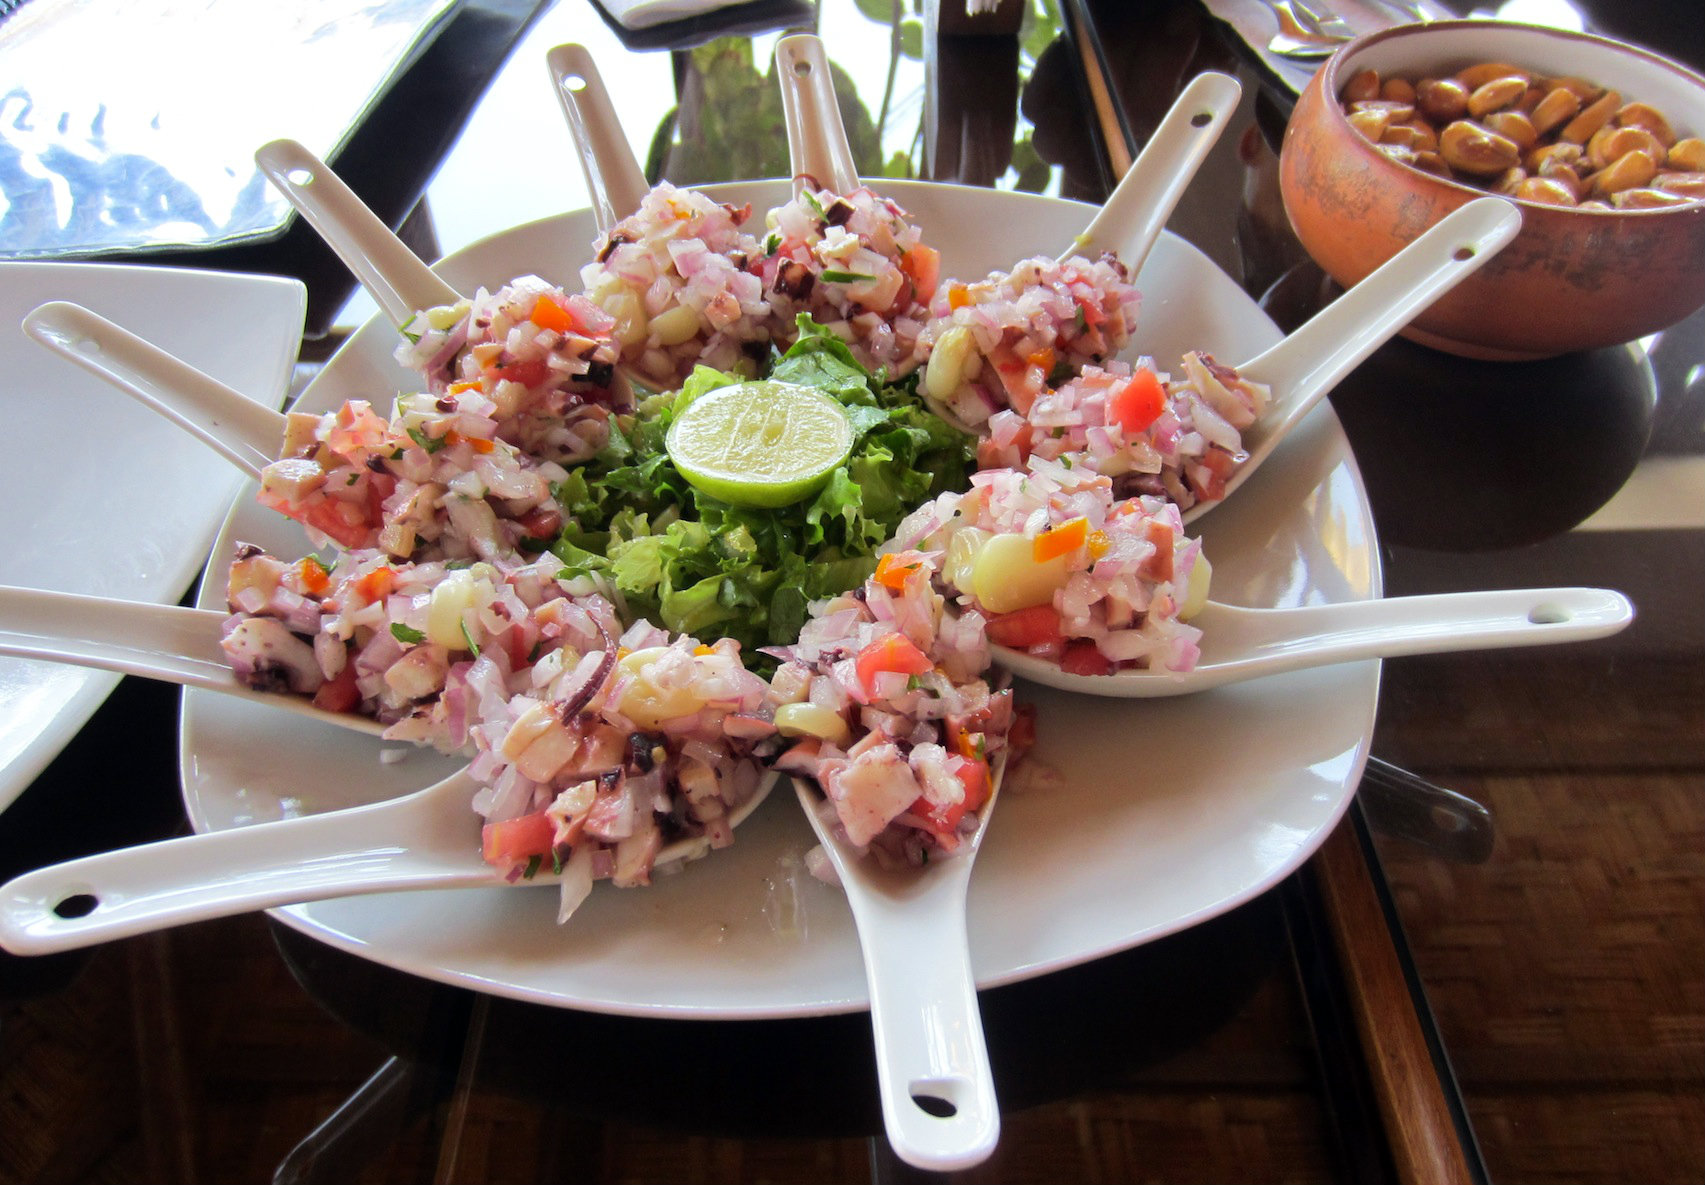 Peruvian Food 20 Foods You Should Eat In Peru Chica On The Road